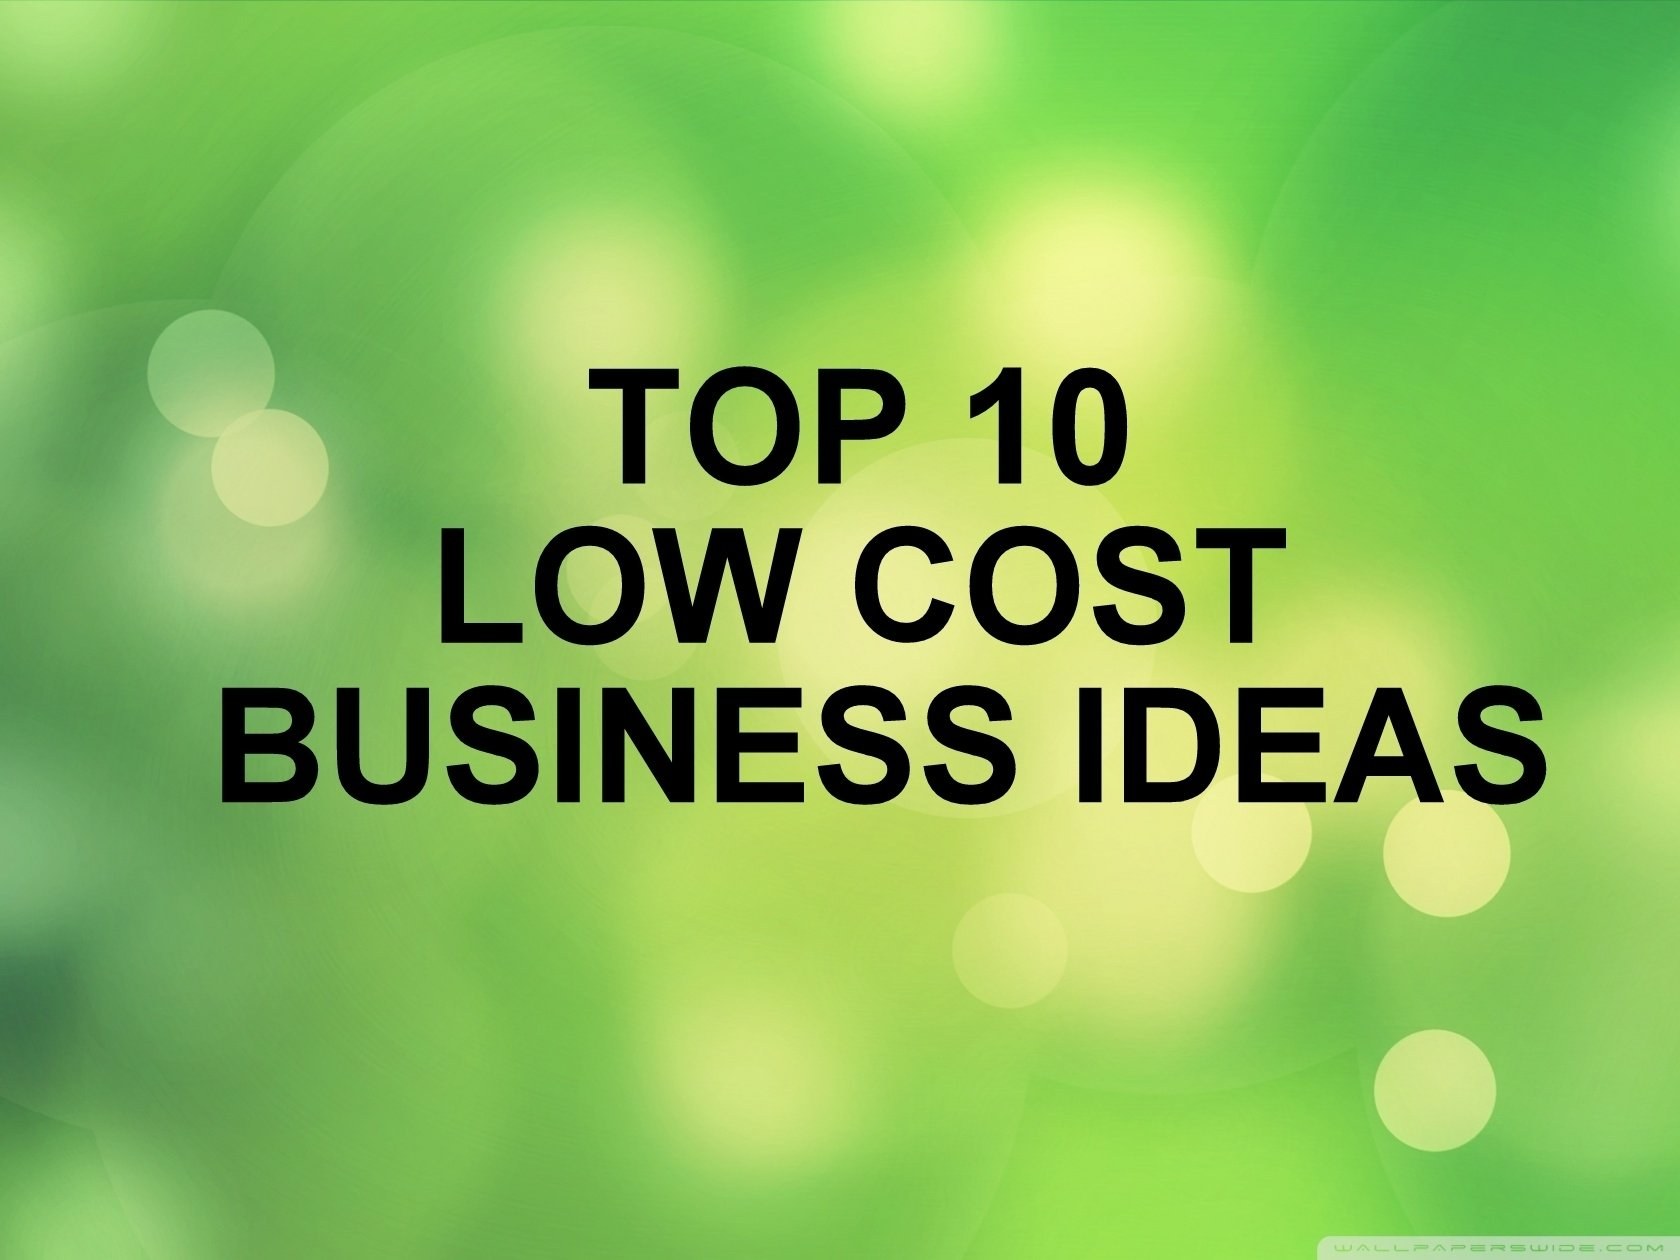 10 Lovable Low Cost Startup Business Ideas top 10 low cost business ideas entreprenoria 2020